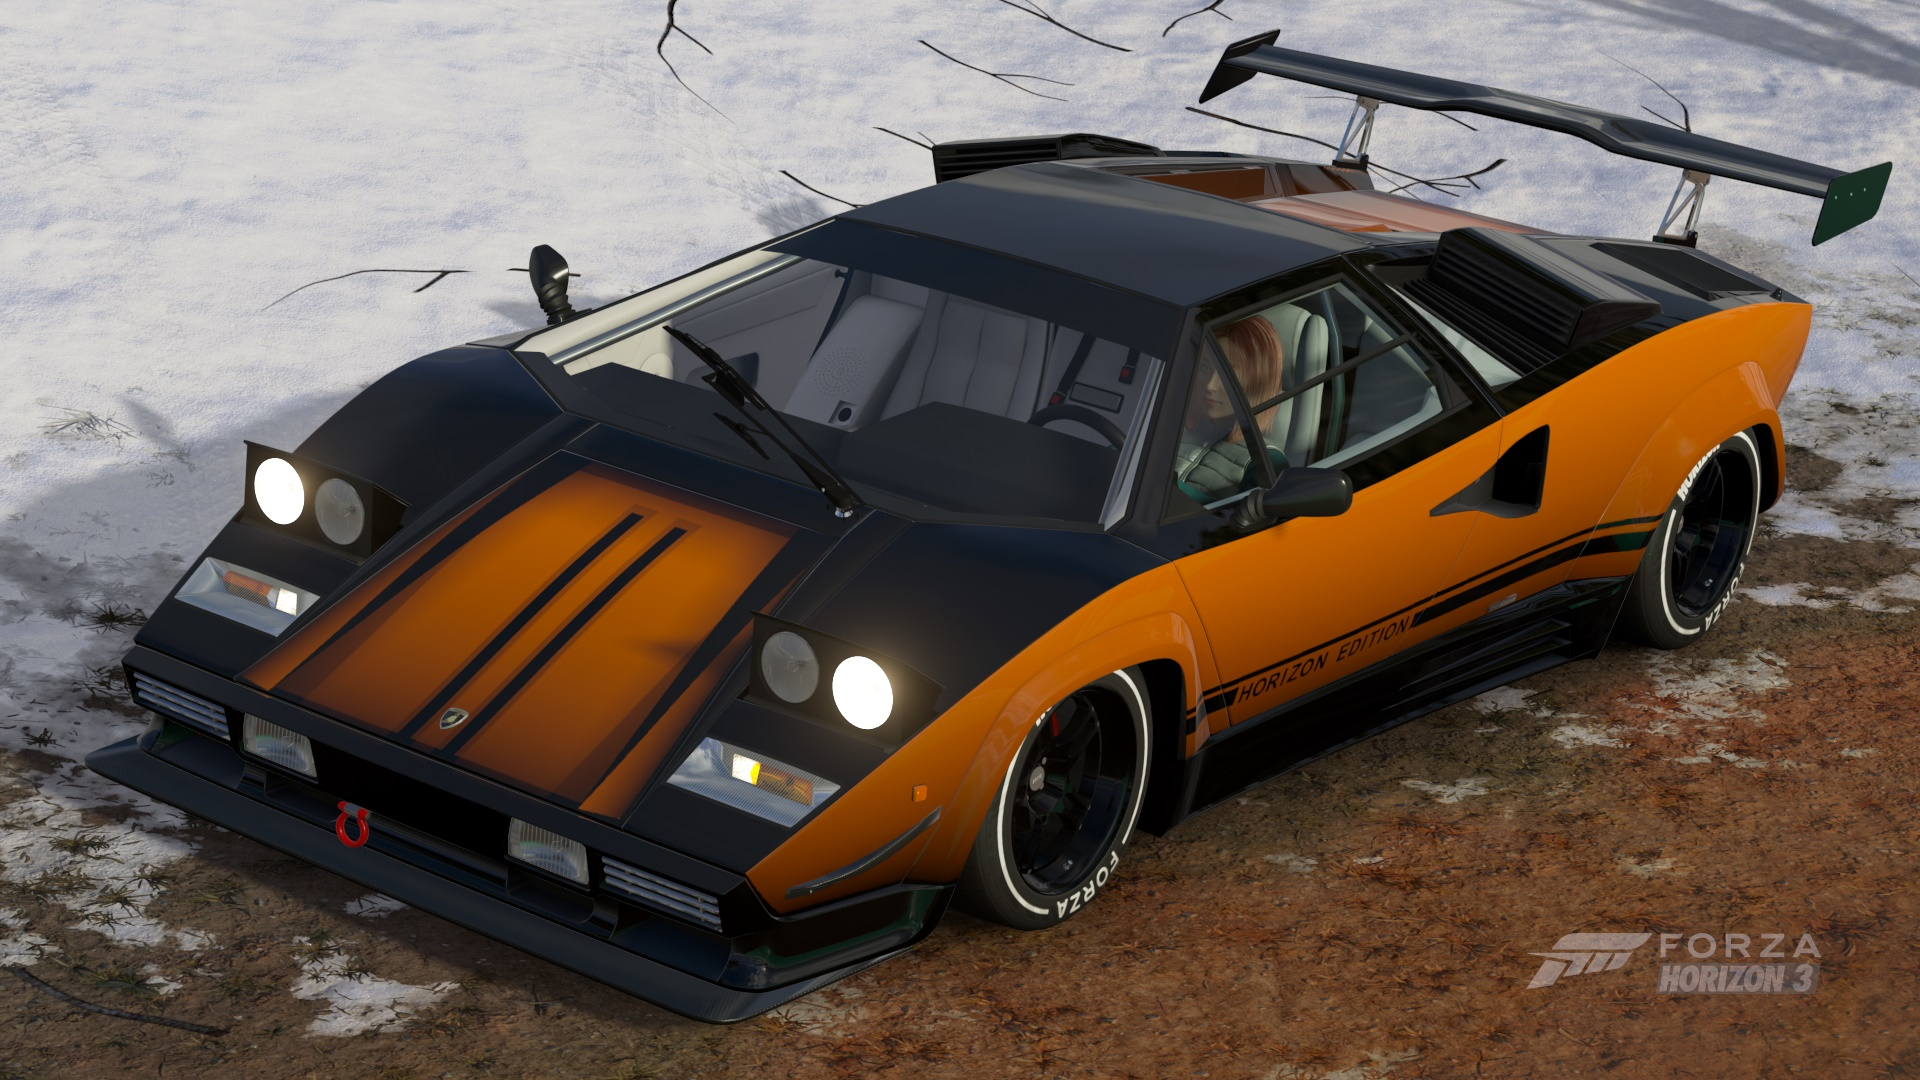 Image result for rear spoiler countach forza horizon 3